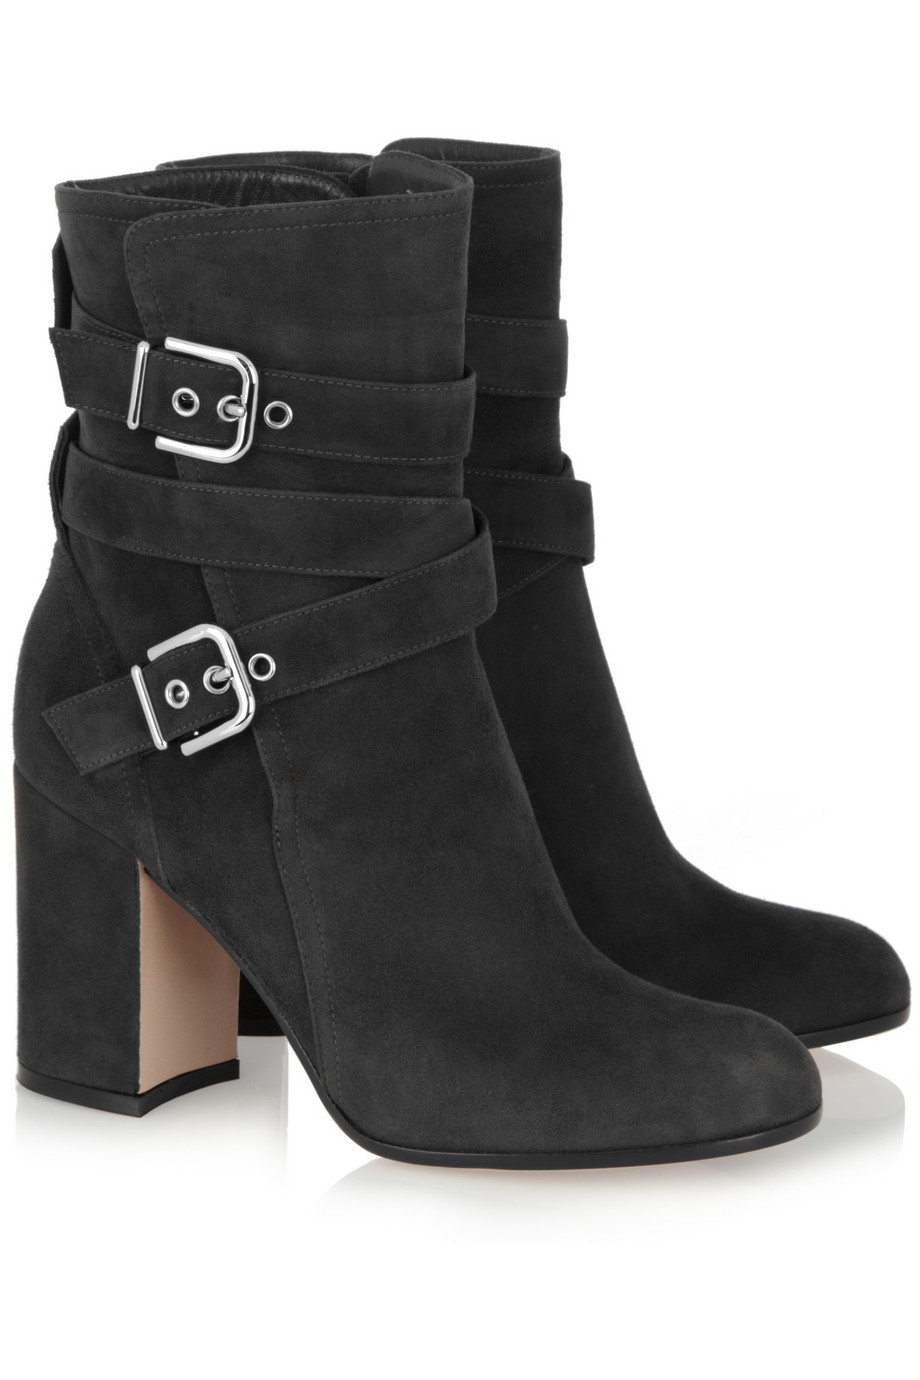 gianvito rossi buckled suede ankle boots in gray lyst. Black Bedroom Furniture Sets. Home Design Ideas